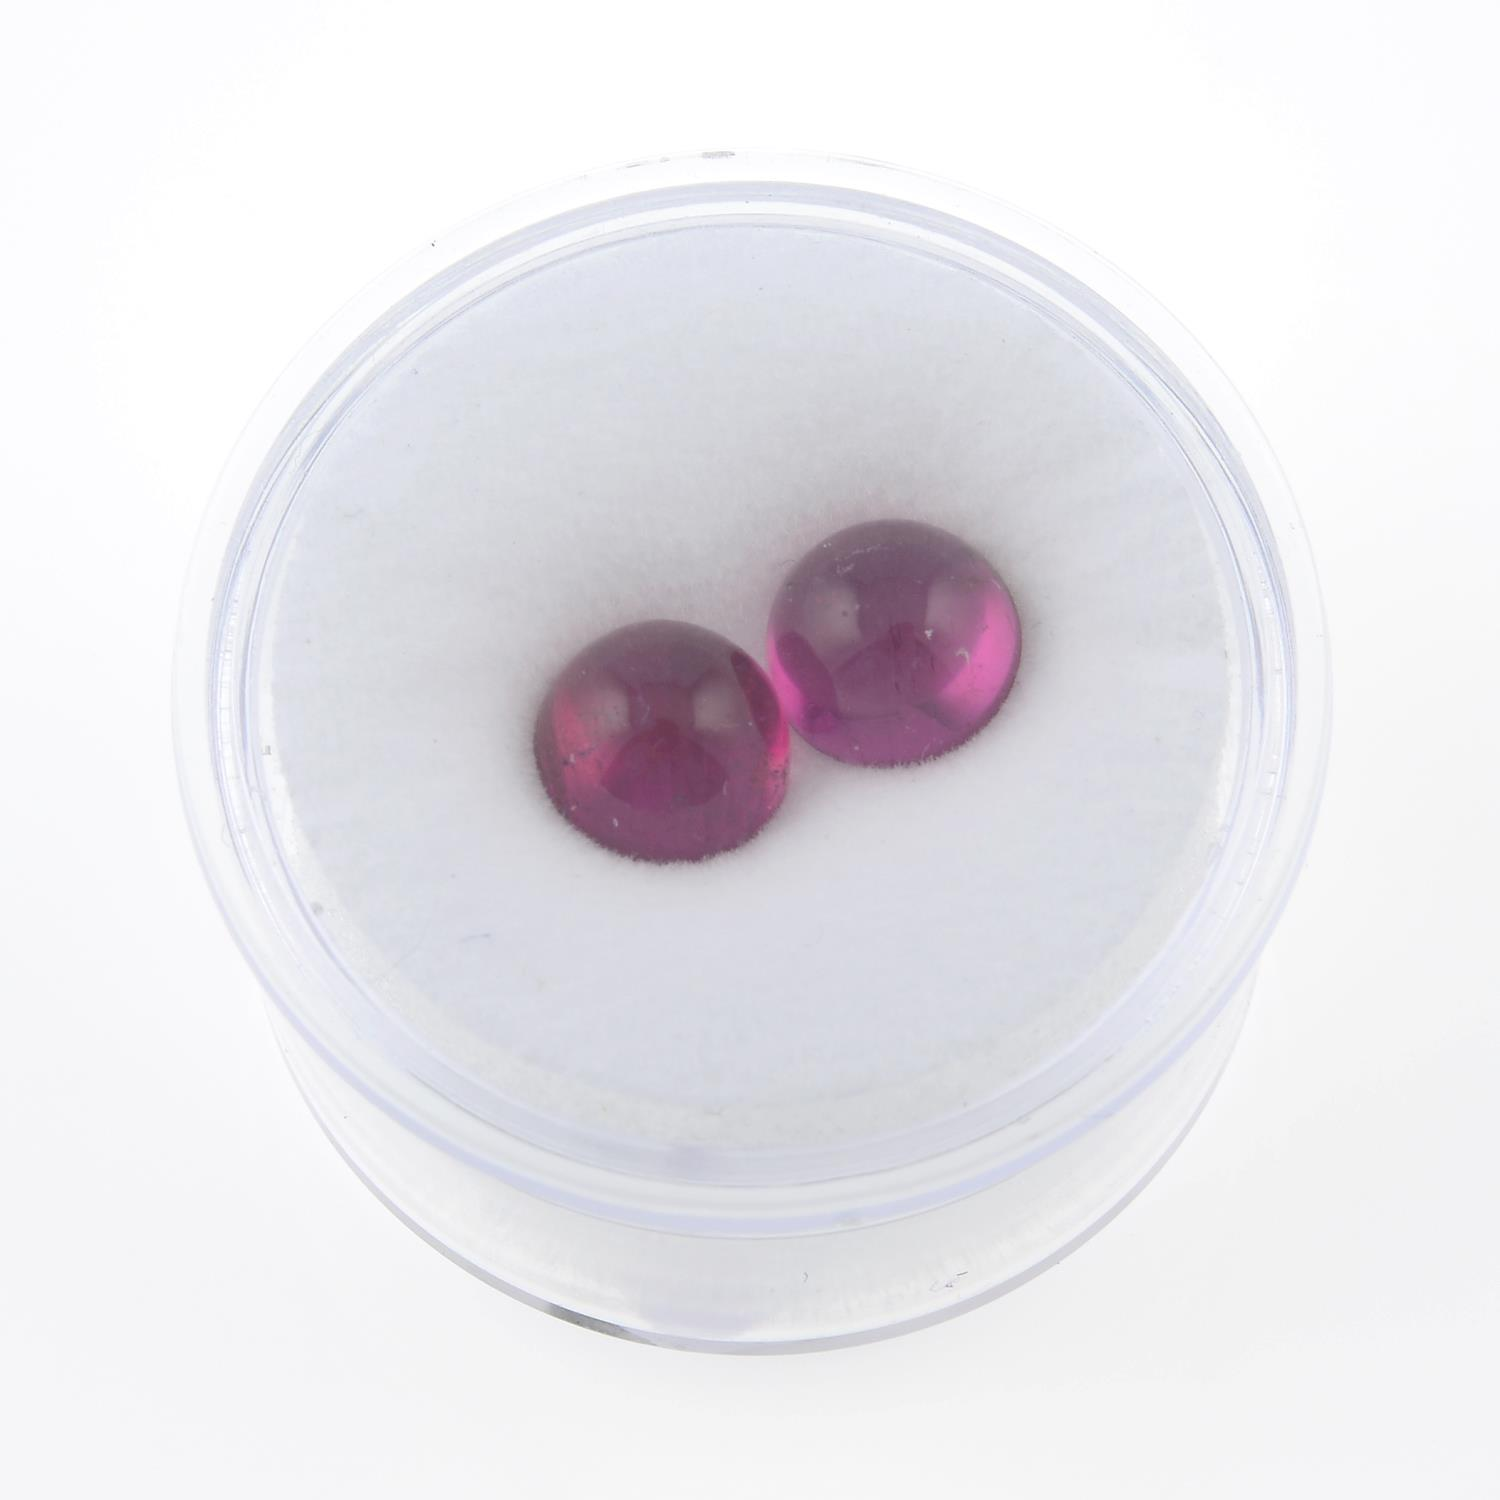 Pair of rubellite cabochons, weighing 3.66ct. - Image 3 of 3